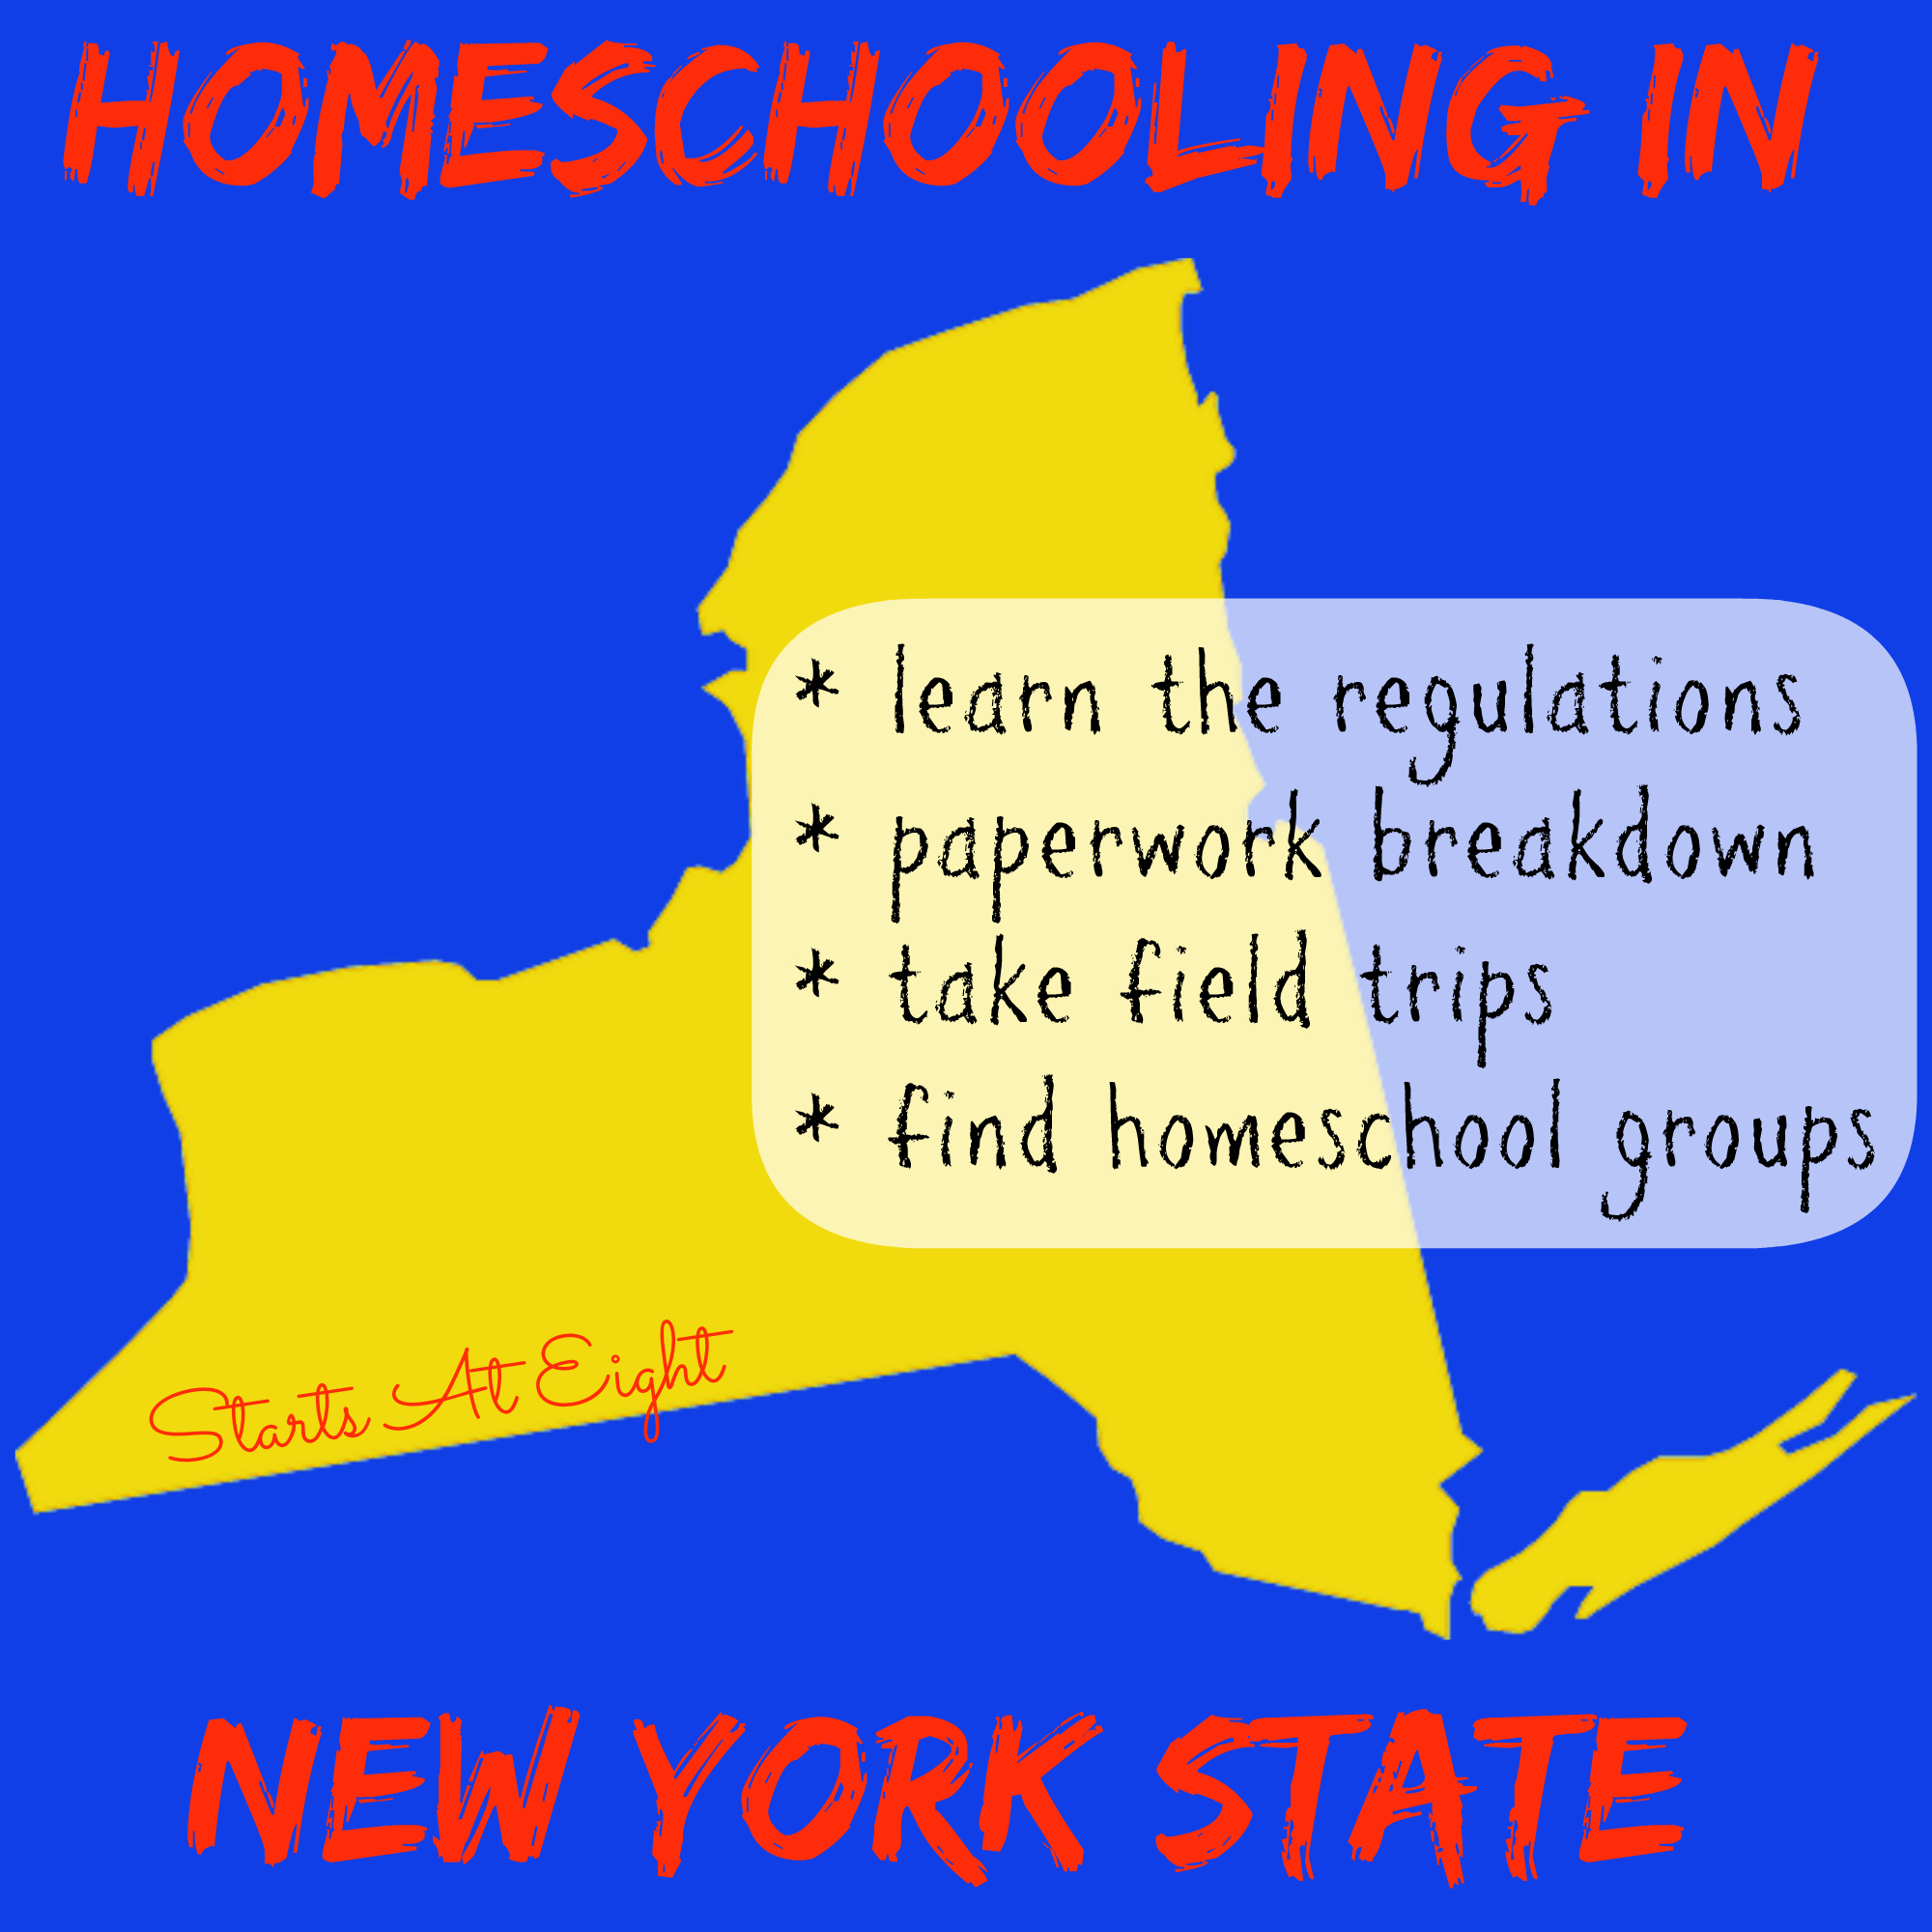 Homeschooling In New York State